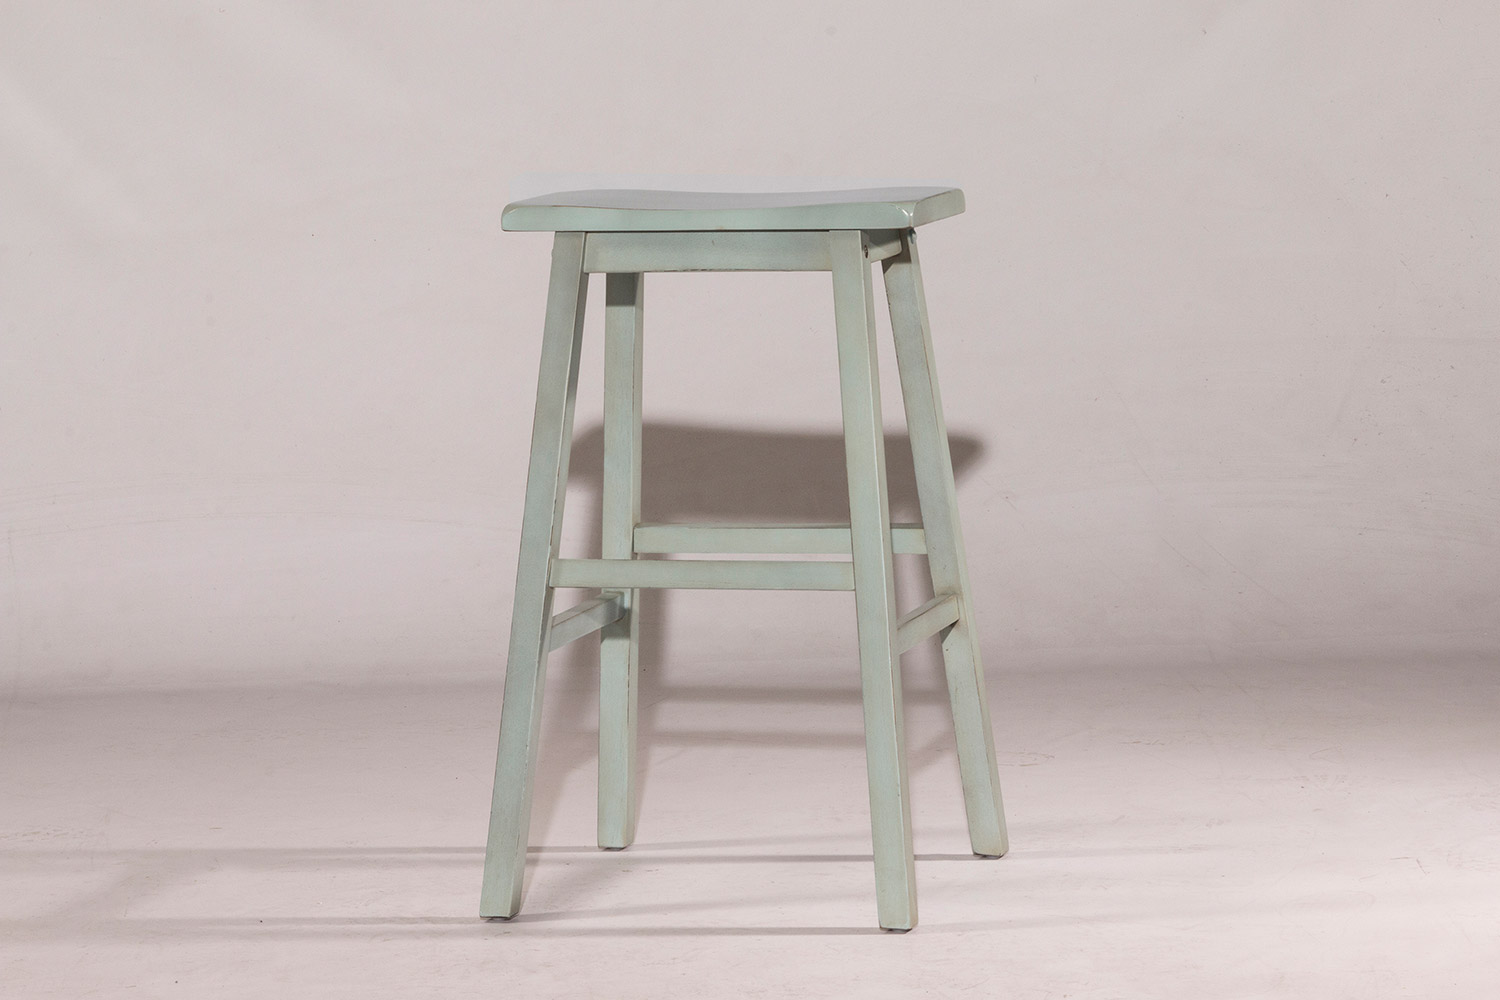 Hillsdale Moreno Non-Swivel Backless Bar Stool - Blue/Gray - Ecru Fabric